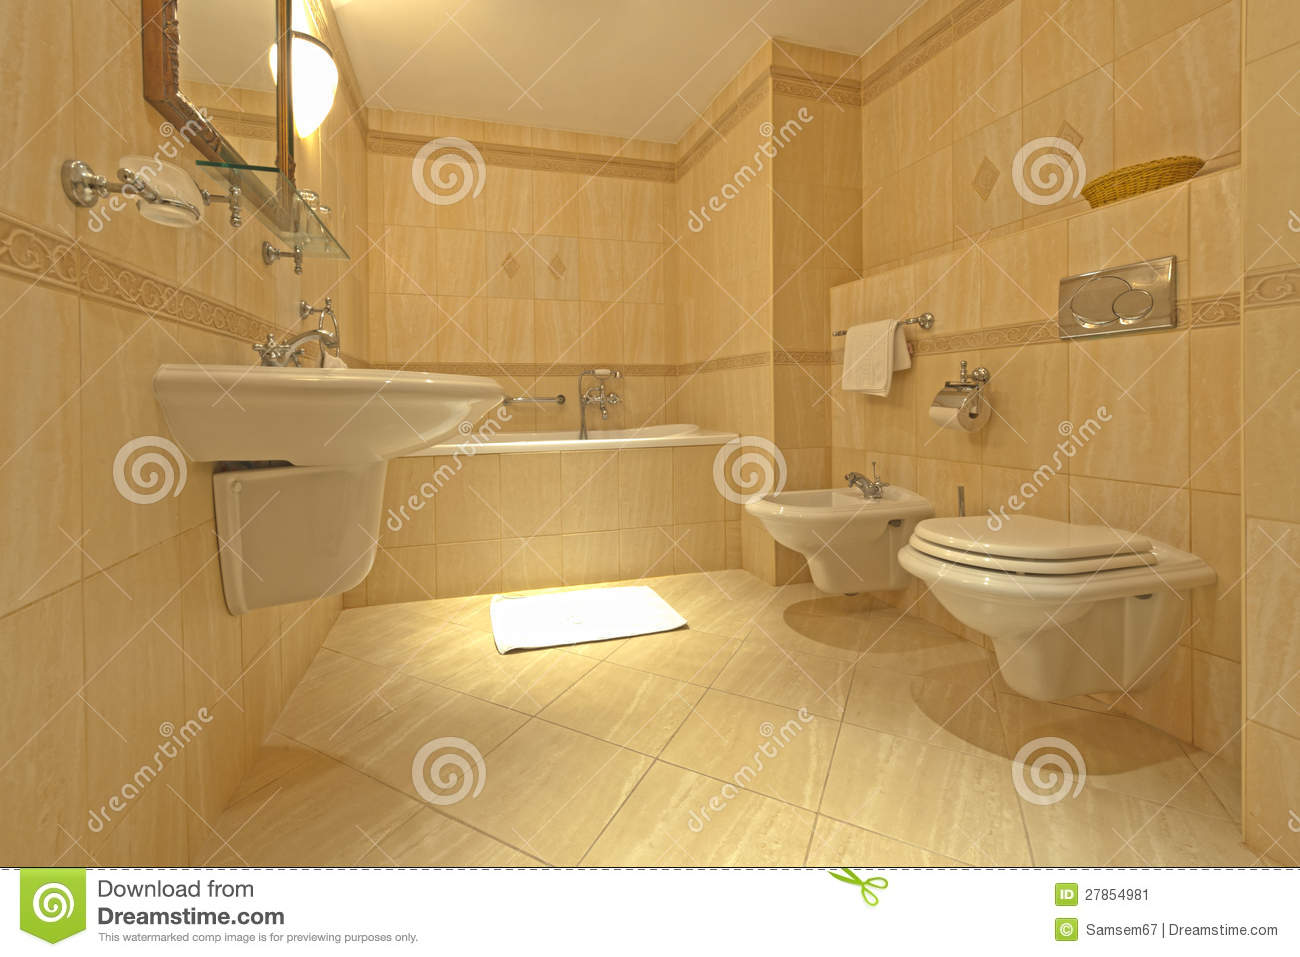 salle de bains avec le bidet et la carte de travail image stock image du bathroom maison. Black Bedroom Furniture Sets. Home Design Ideas